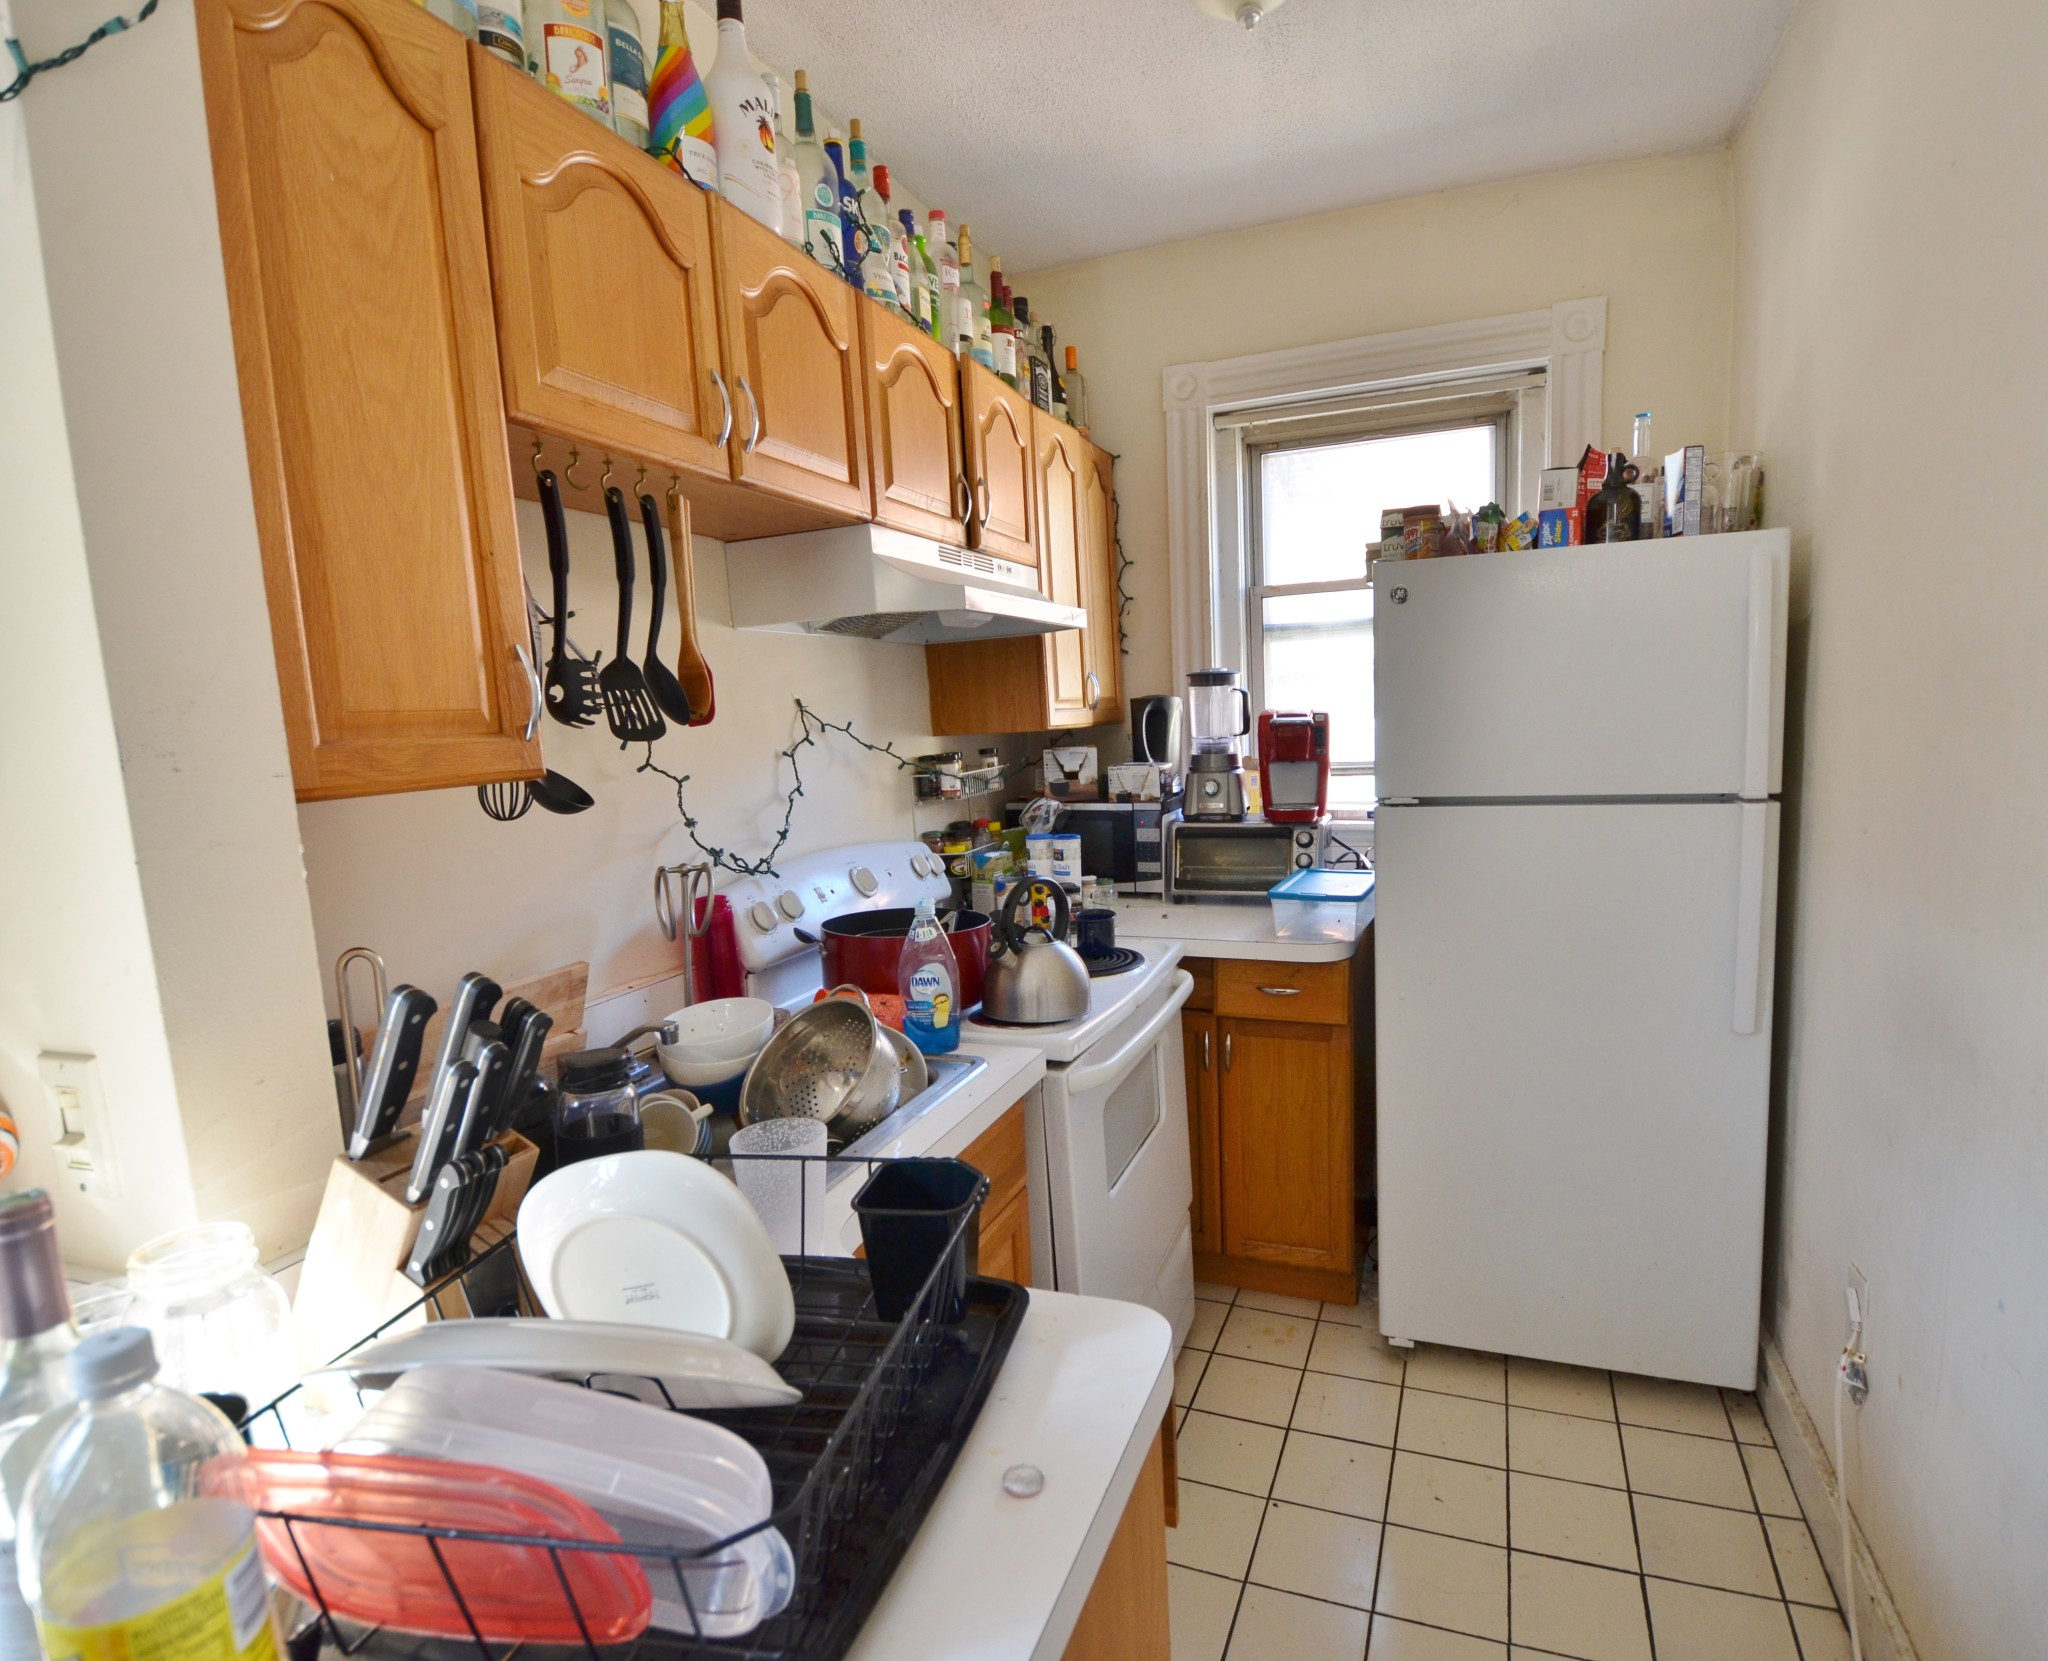 4 Bd, Separate Kitchen, Laundry in Building, DSL/Cable Ready